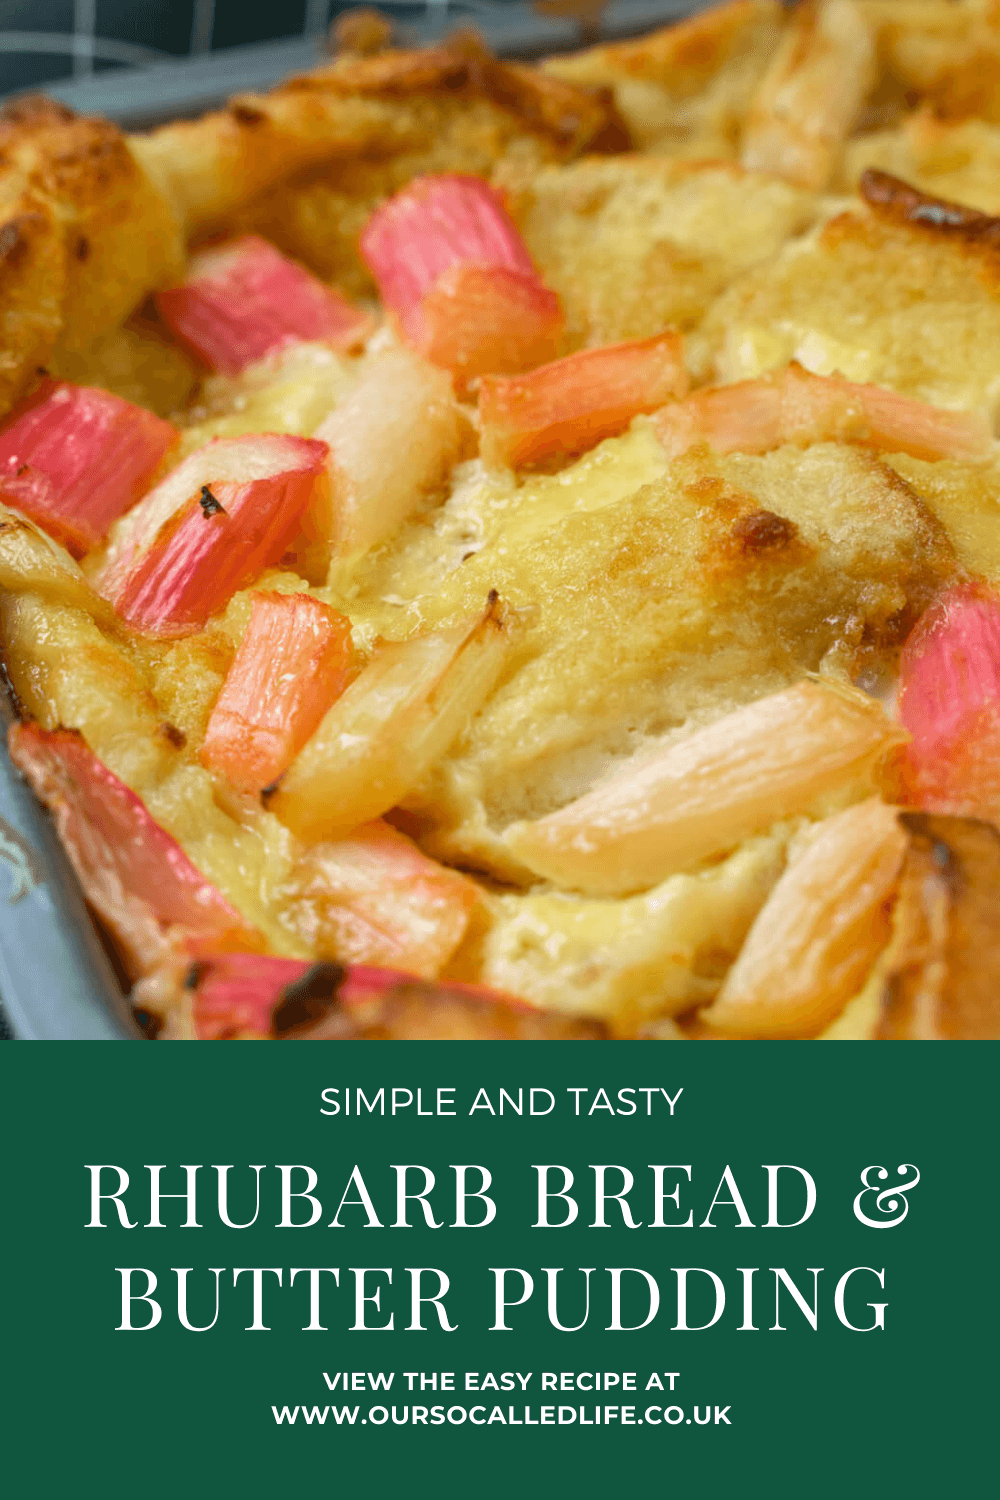 Rhubarb Bread and Butter Pudding Recipe